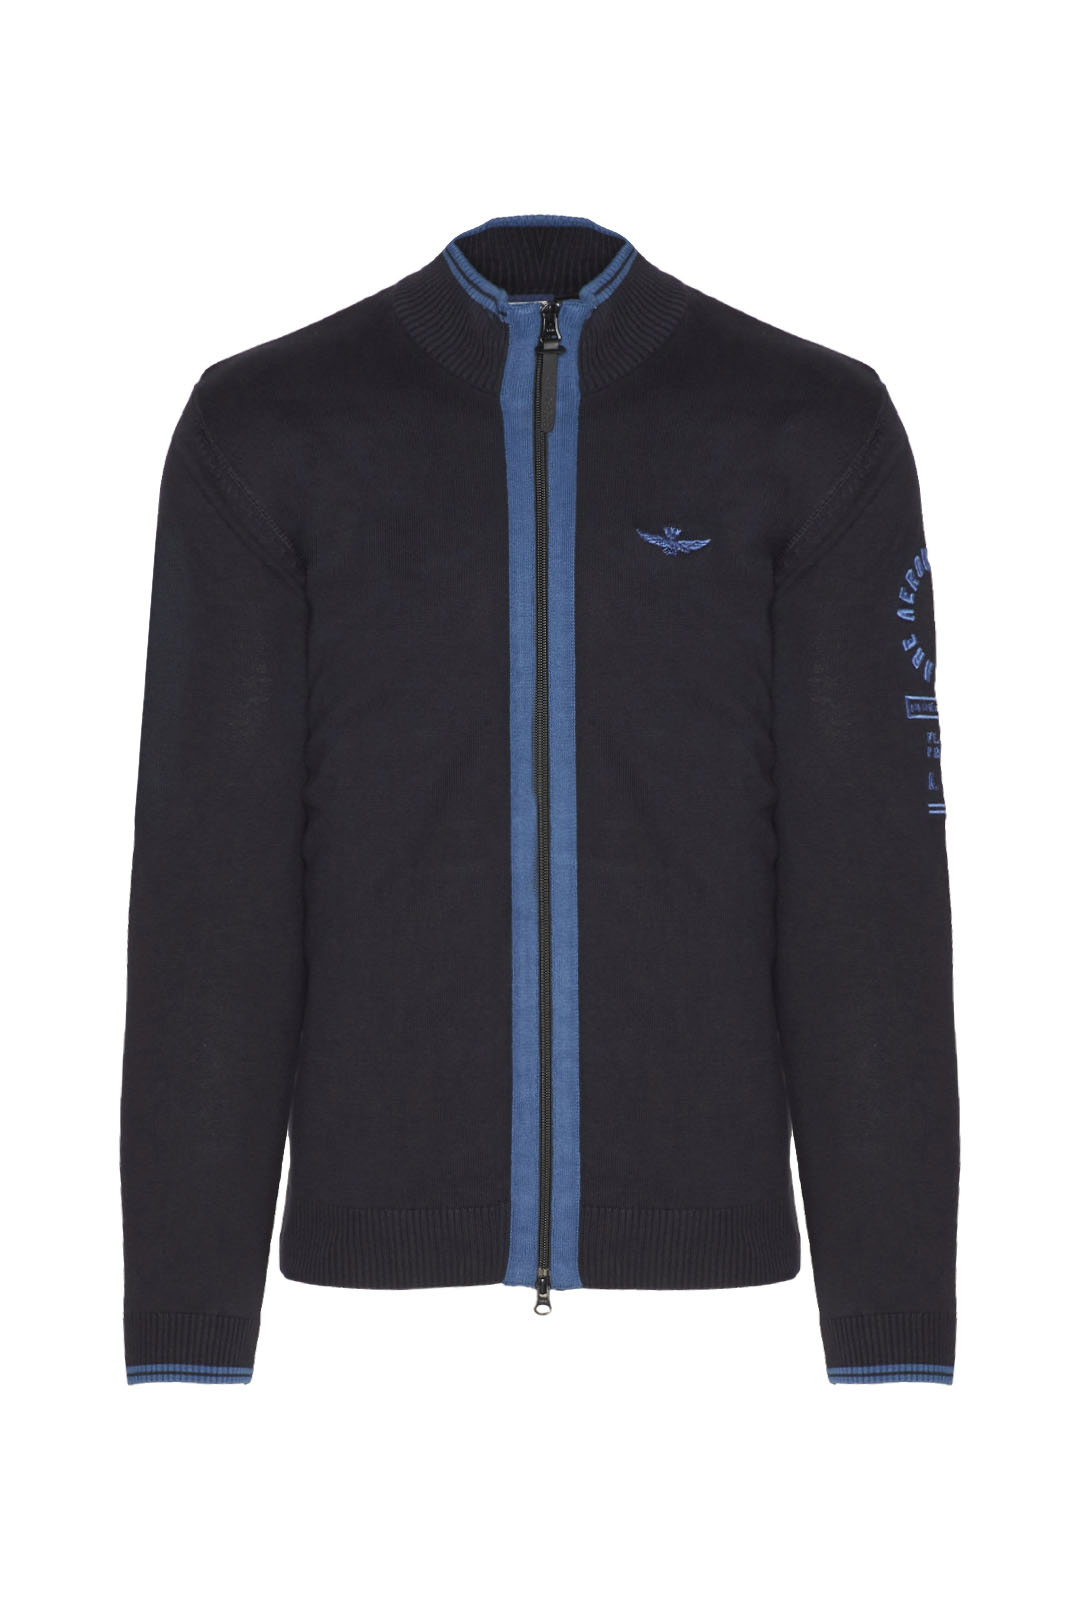 Fullzip sweater with contrasting details 1